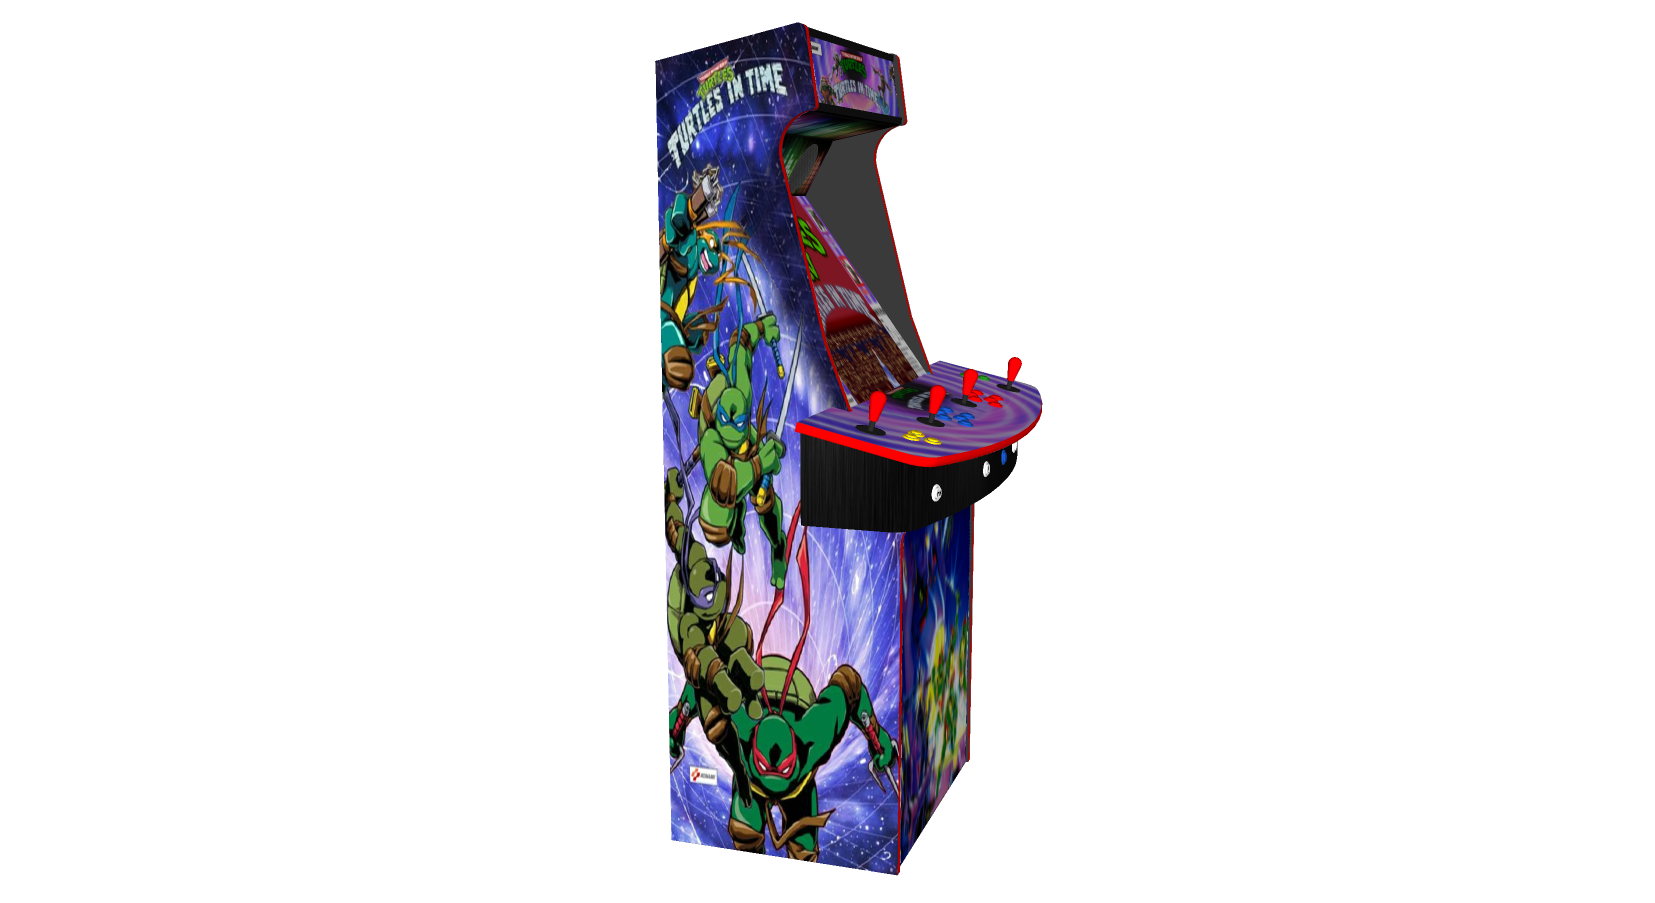 Teenage Mutant Ninja Turtles In Time TMNT - Upright Arcade 4 Player - Left